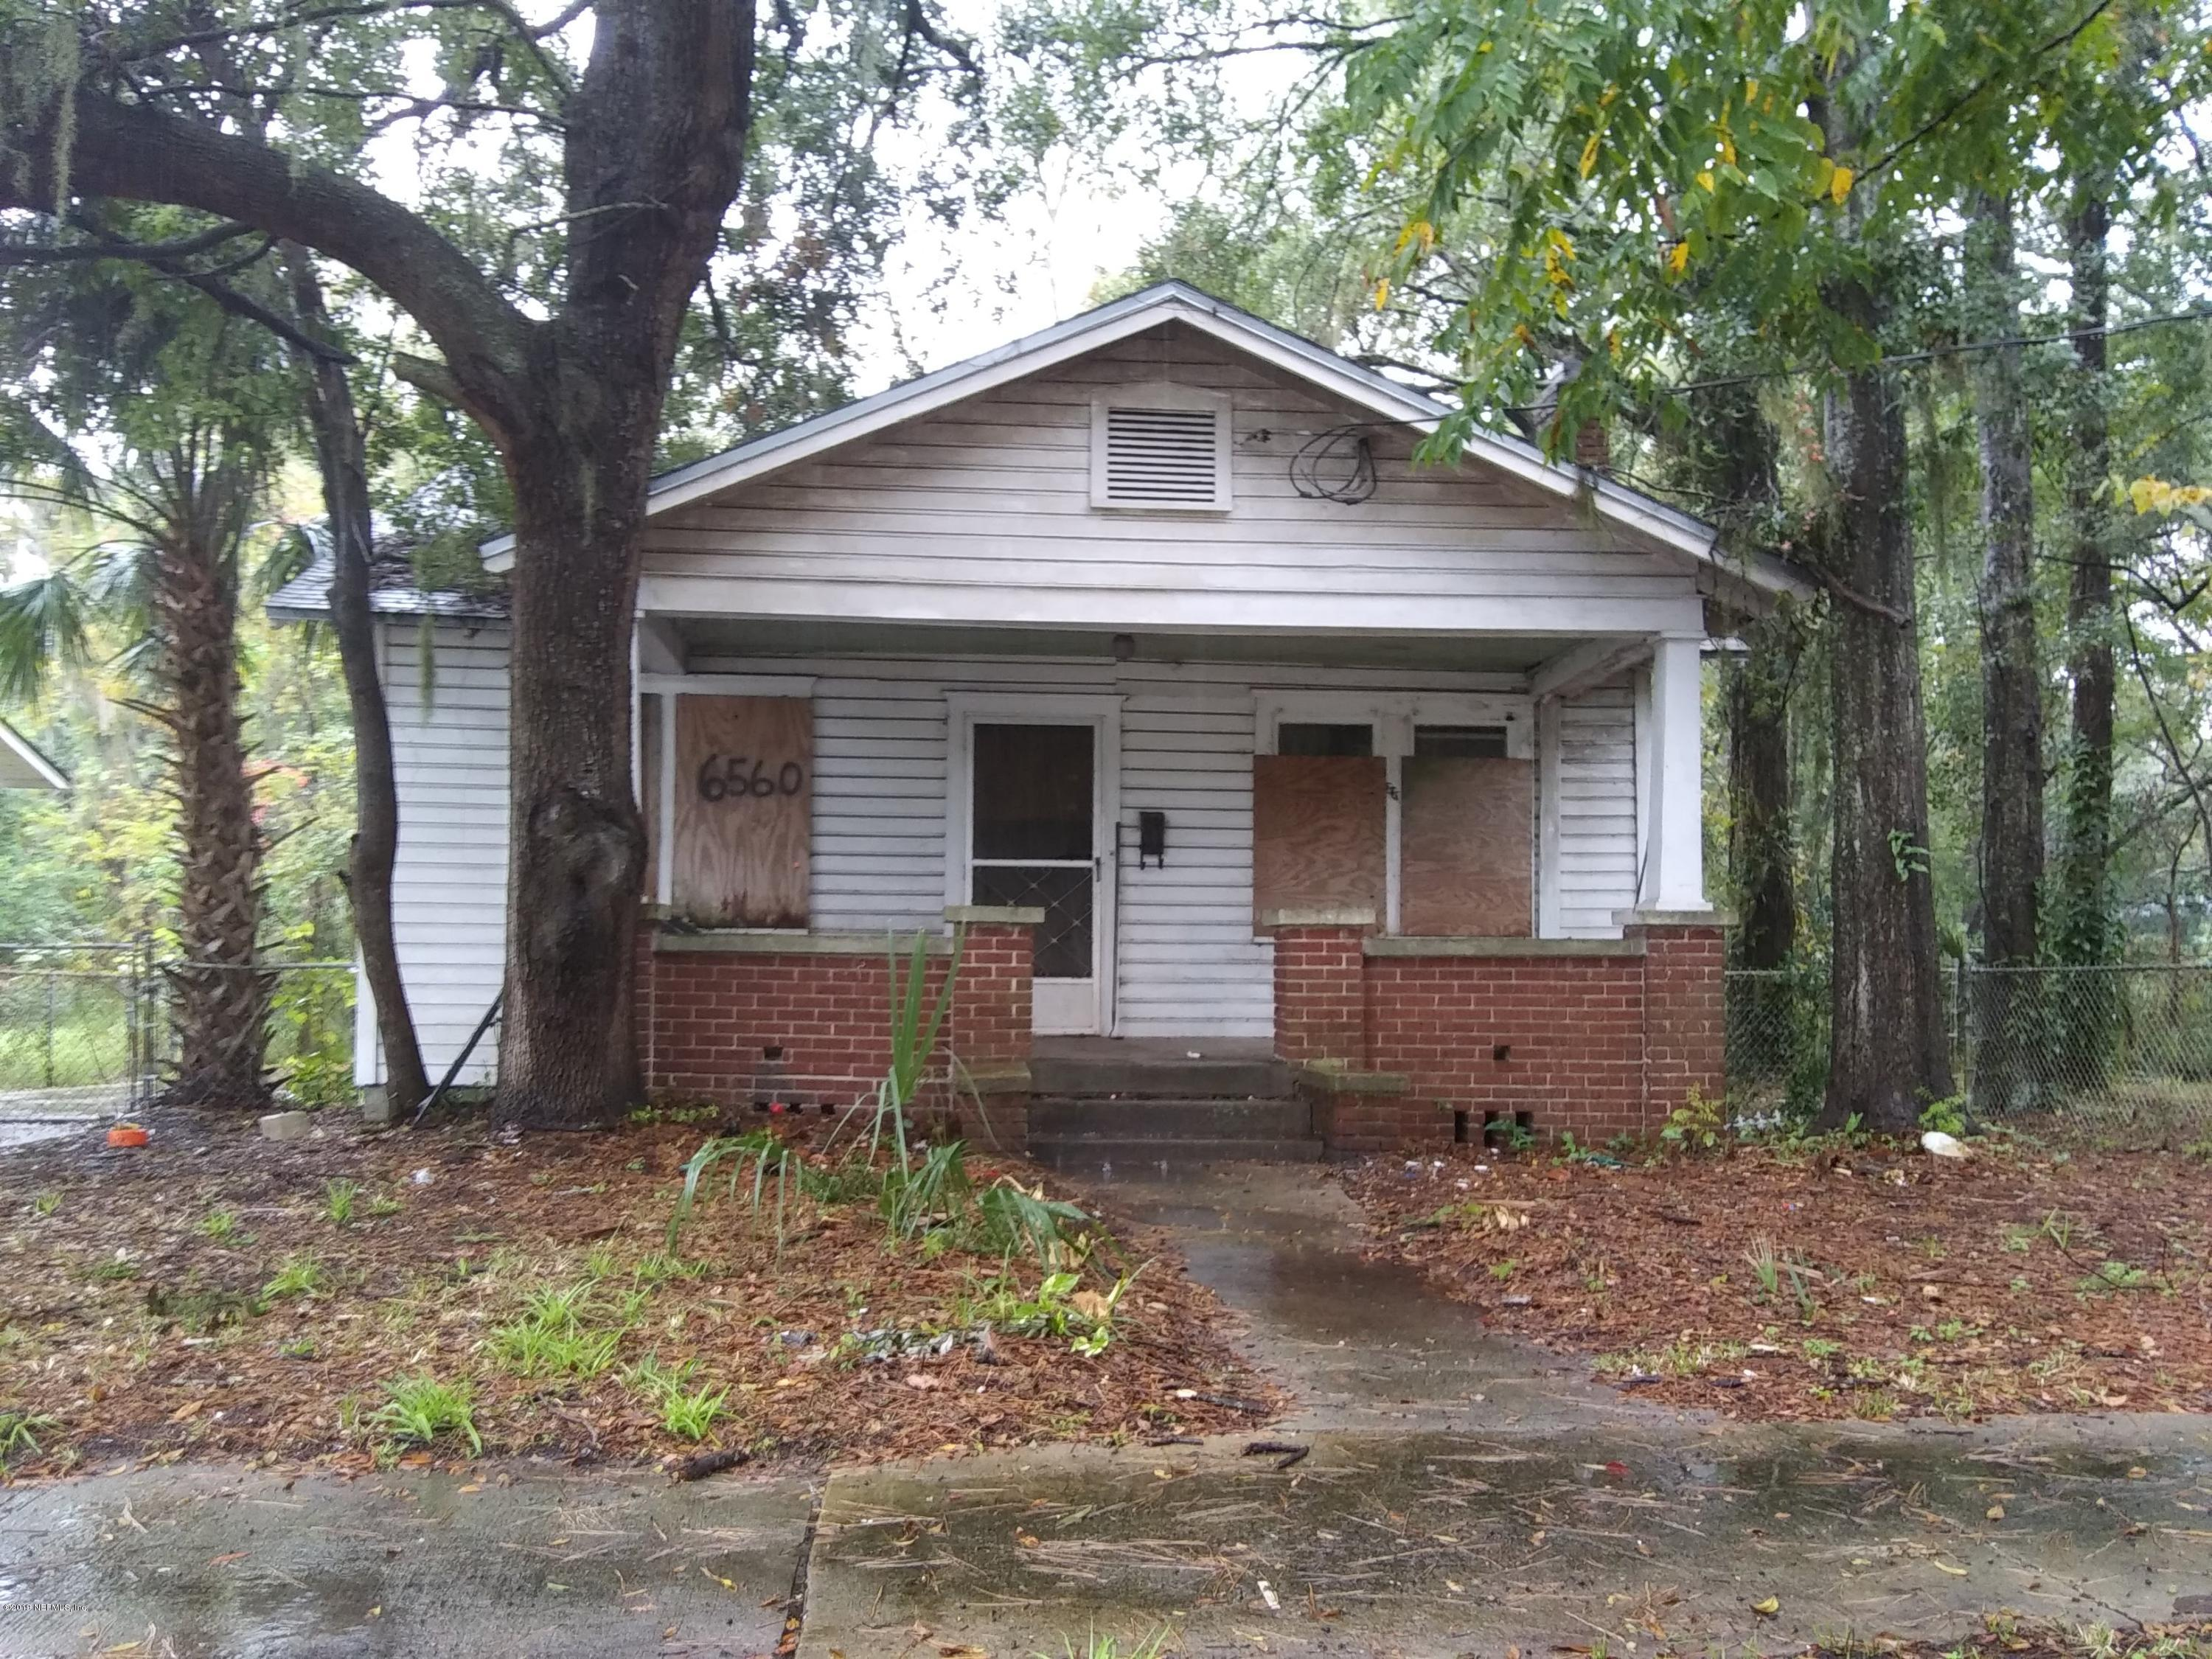 6560 PERRY ST JACKSONVILLE - 1